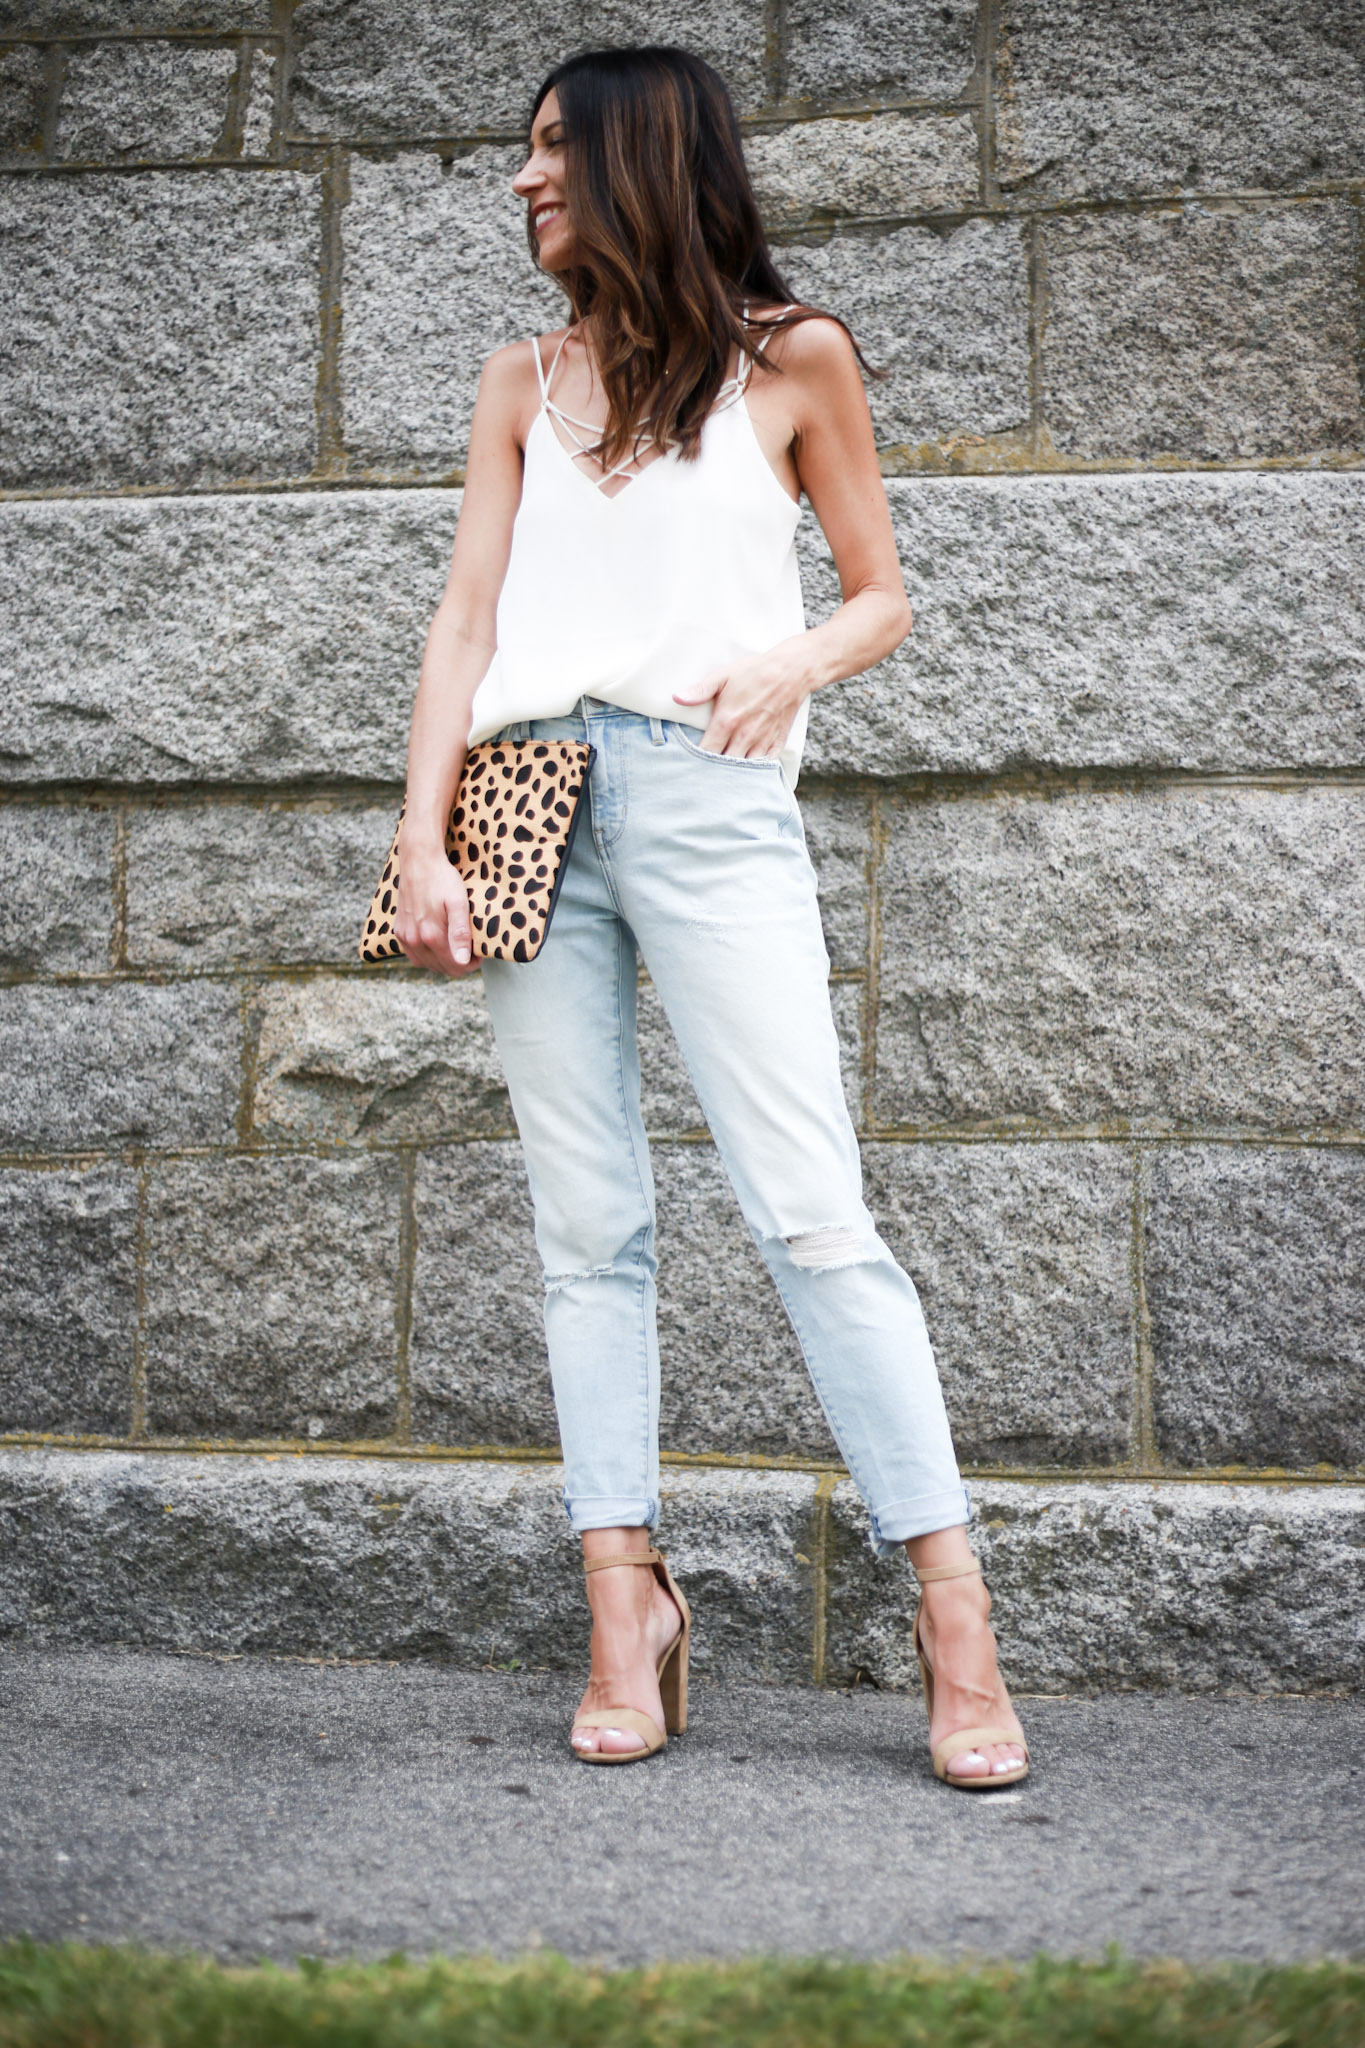 How to Style Girlfriend Jeans for a Date Night Look by Boston fashion blogger Living Life Pretty